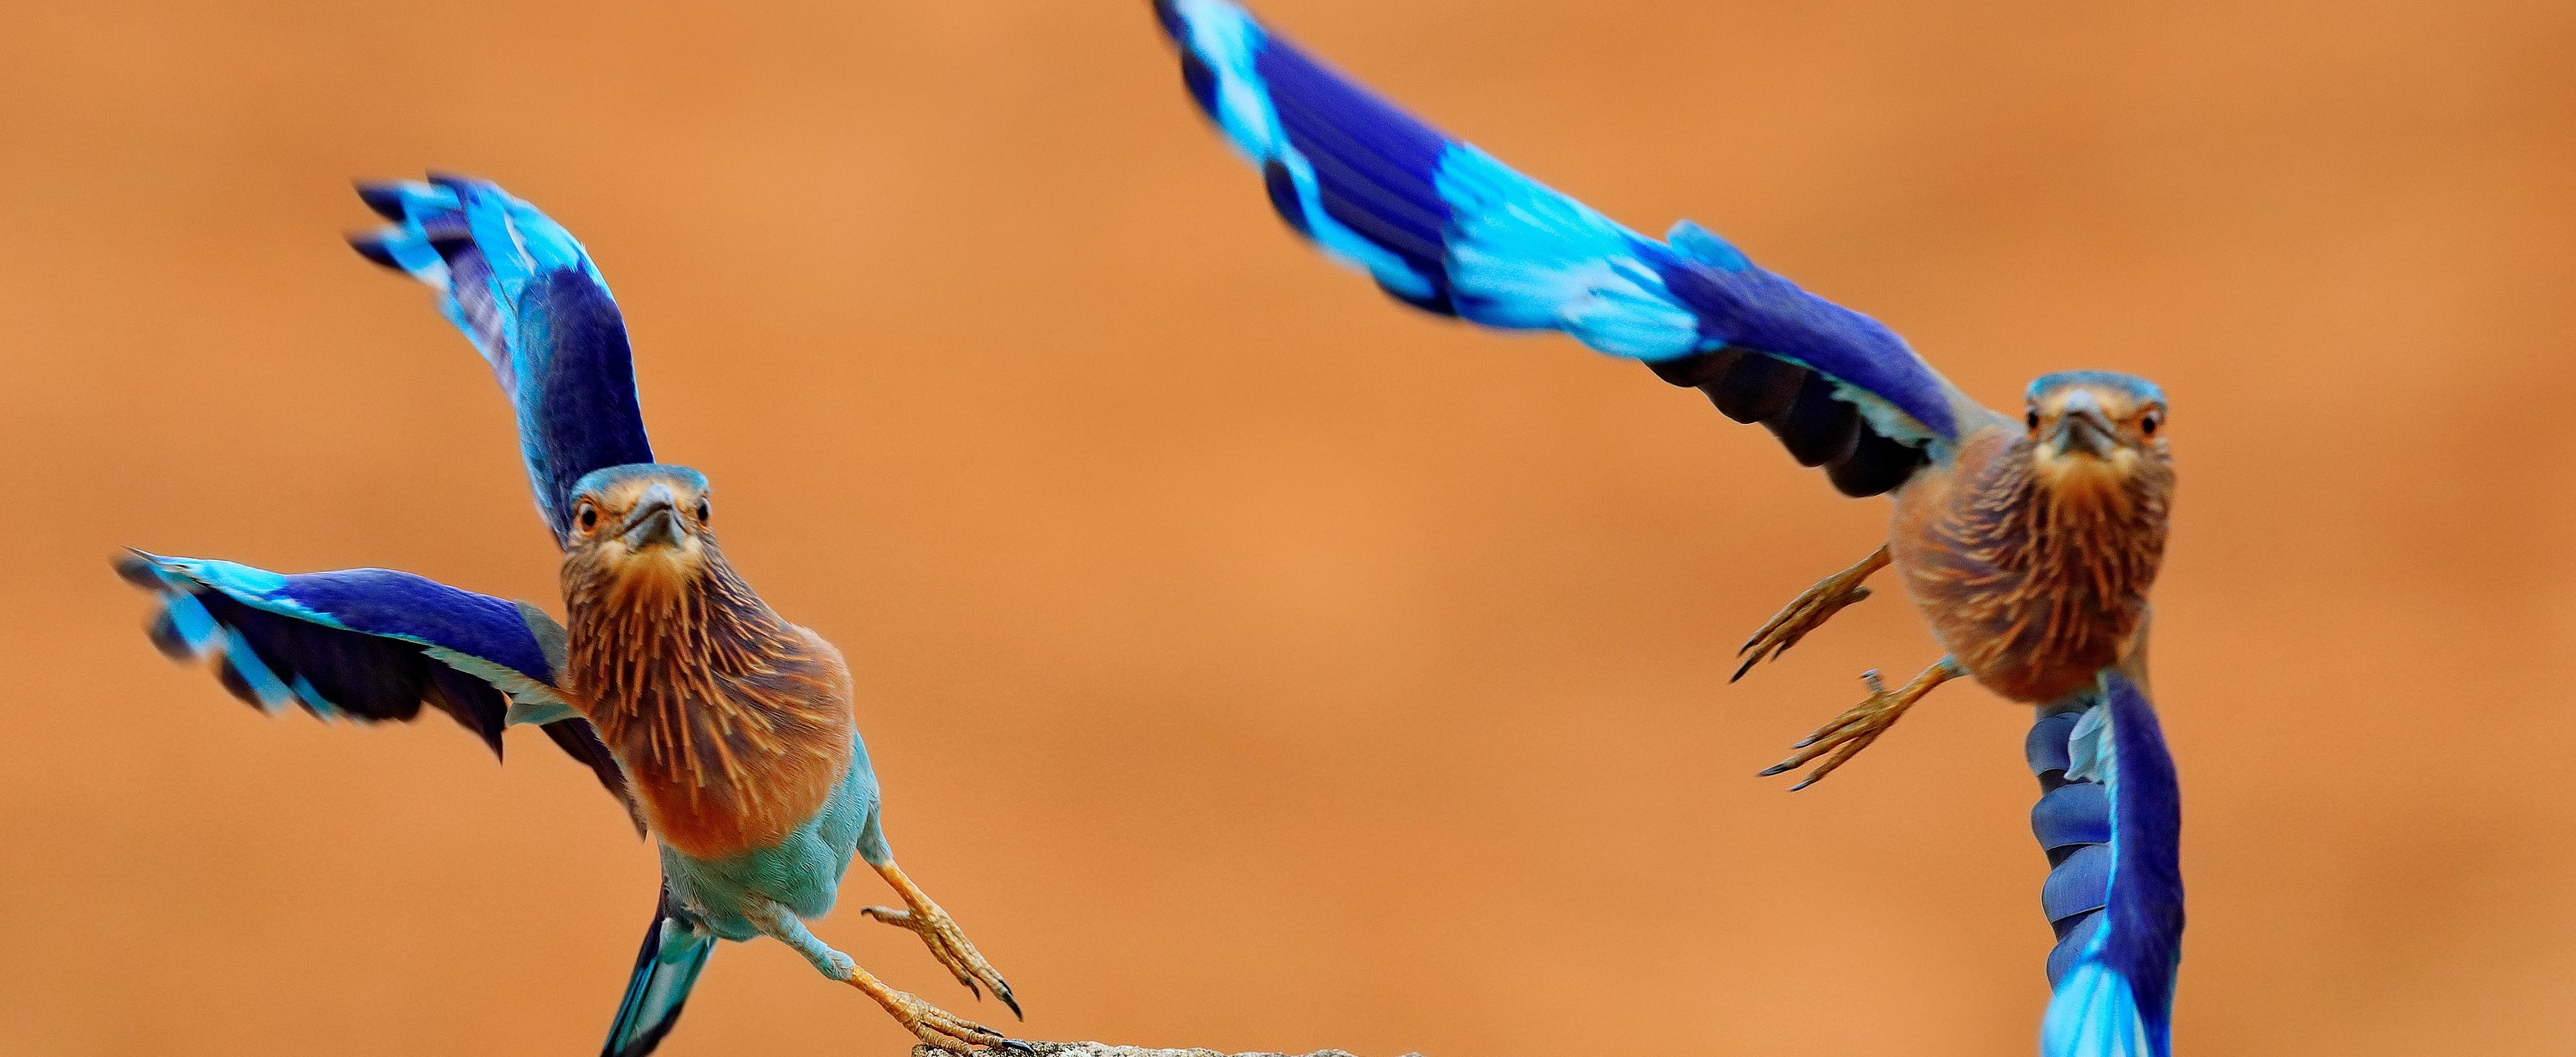 Cropped-for-banner-Indian-rollers-Shutterstock-compressor